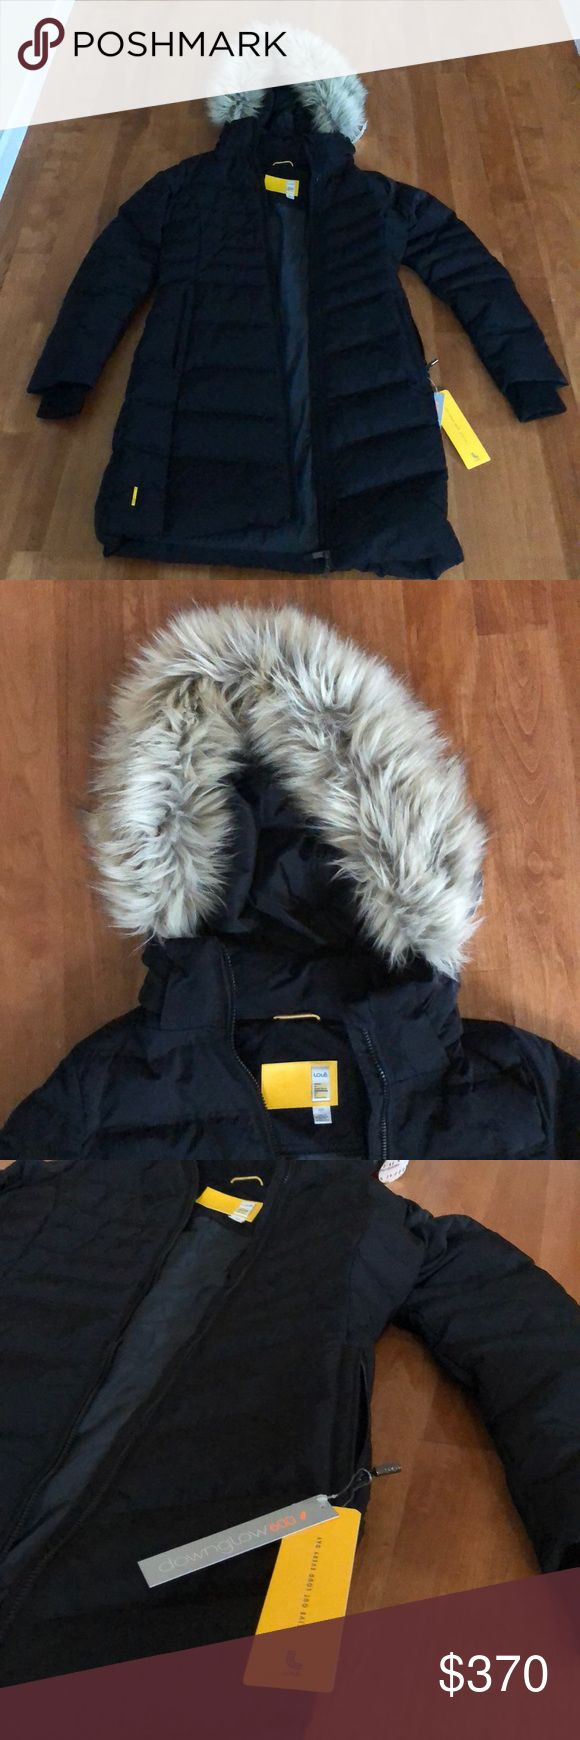 Lole Womens Winter Down Jacket BRAND NEW with tags! Women's Katie Jacket by Lole. Lightweight, warm and length comes just above the knees. Comes with a detachable faux fur hood and longer sleeves to keep the cold out. All around beautiful Jacket. Lole Jackets & Coats Puffers